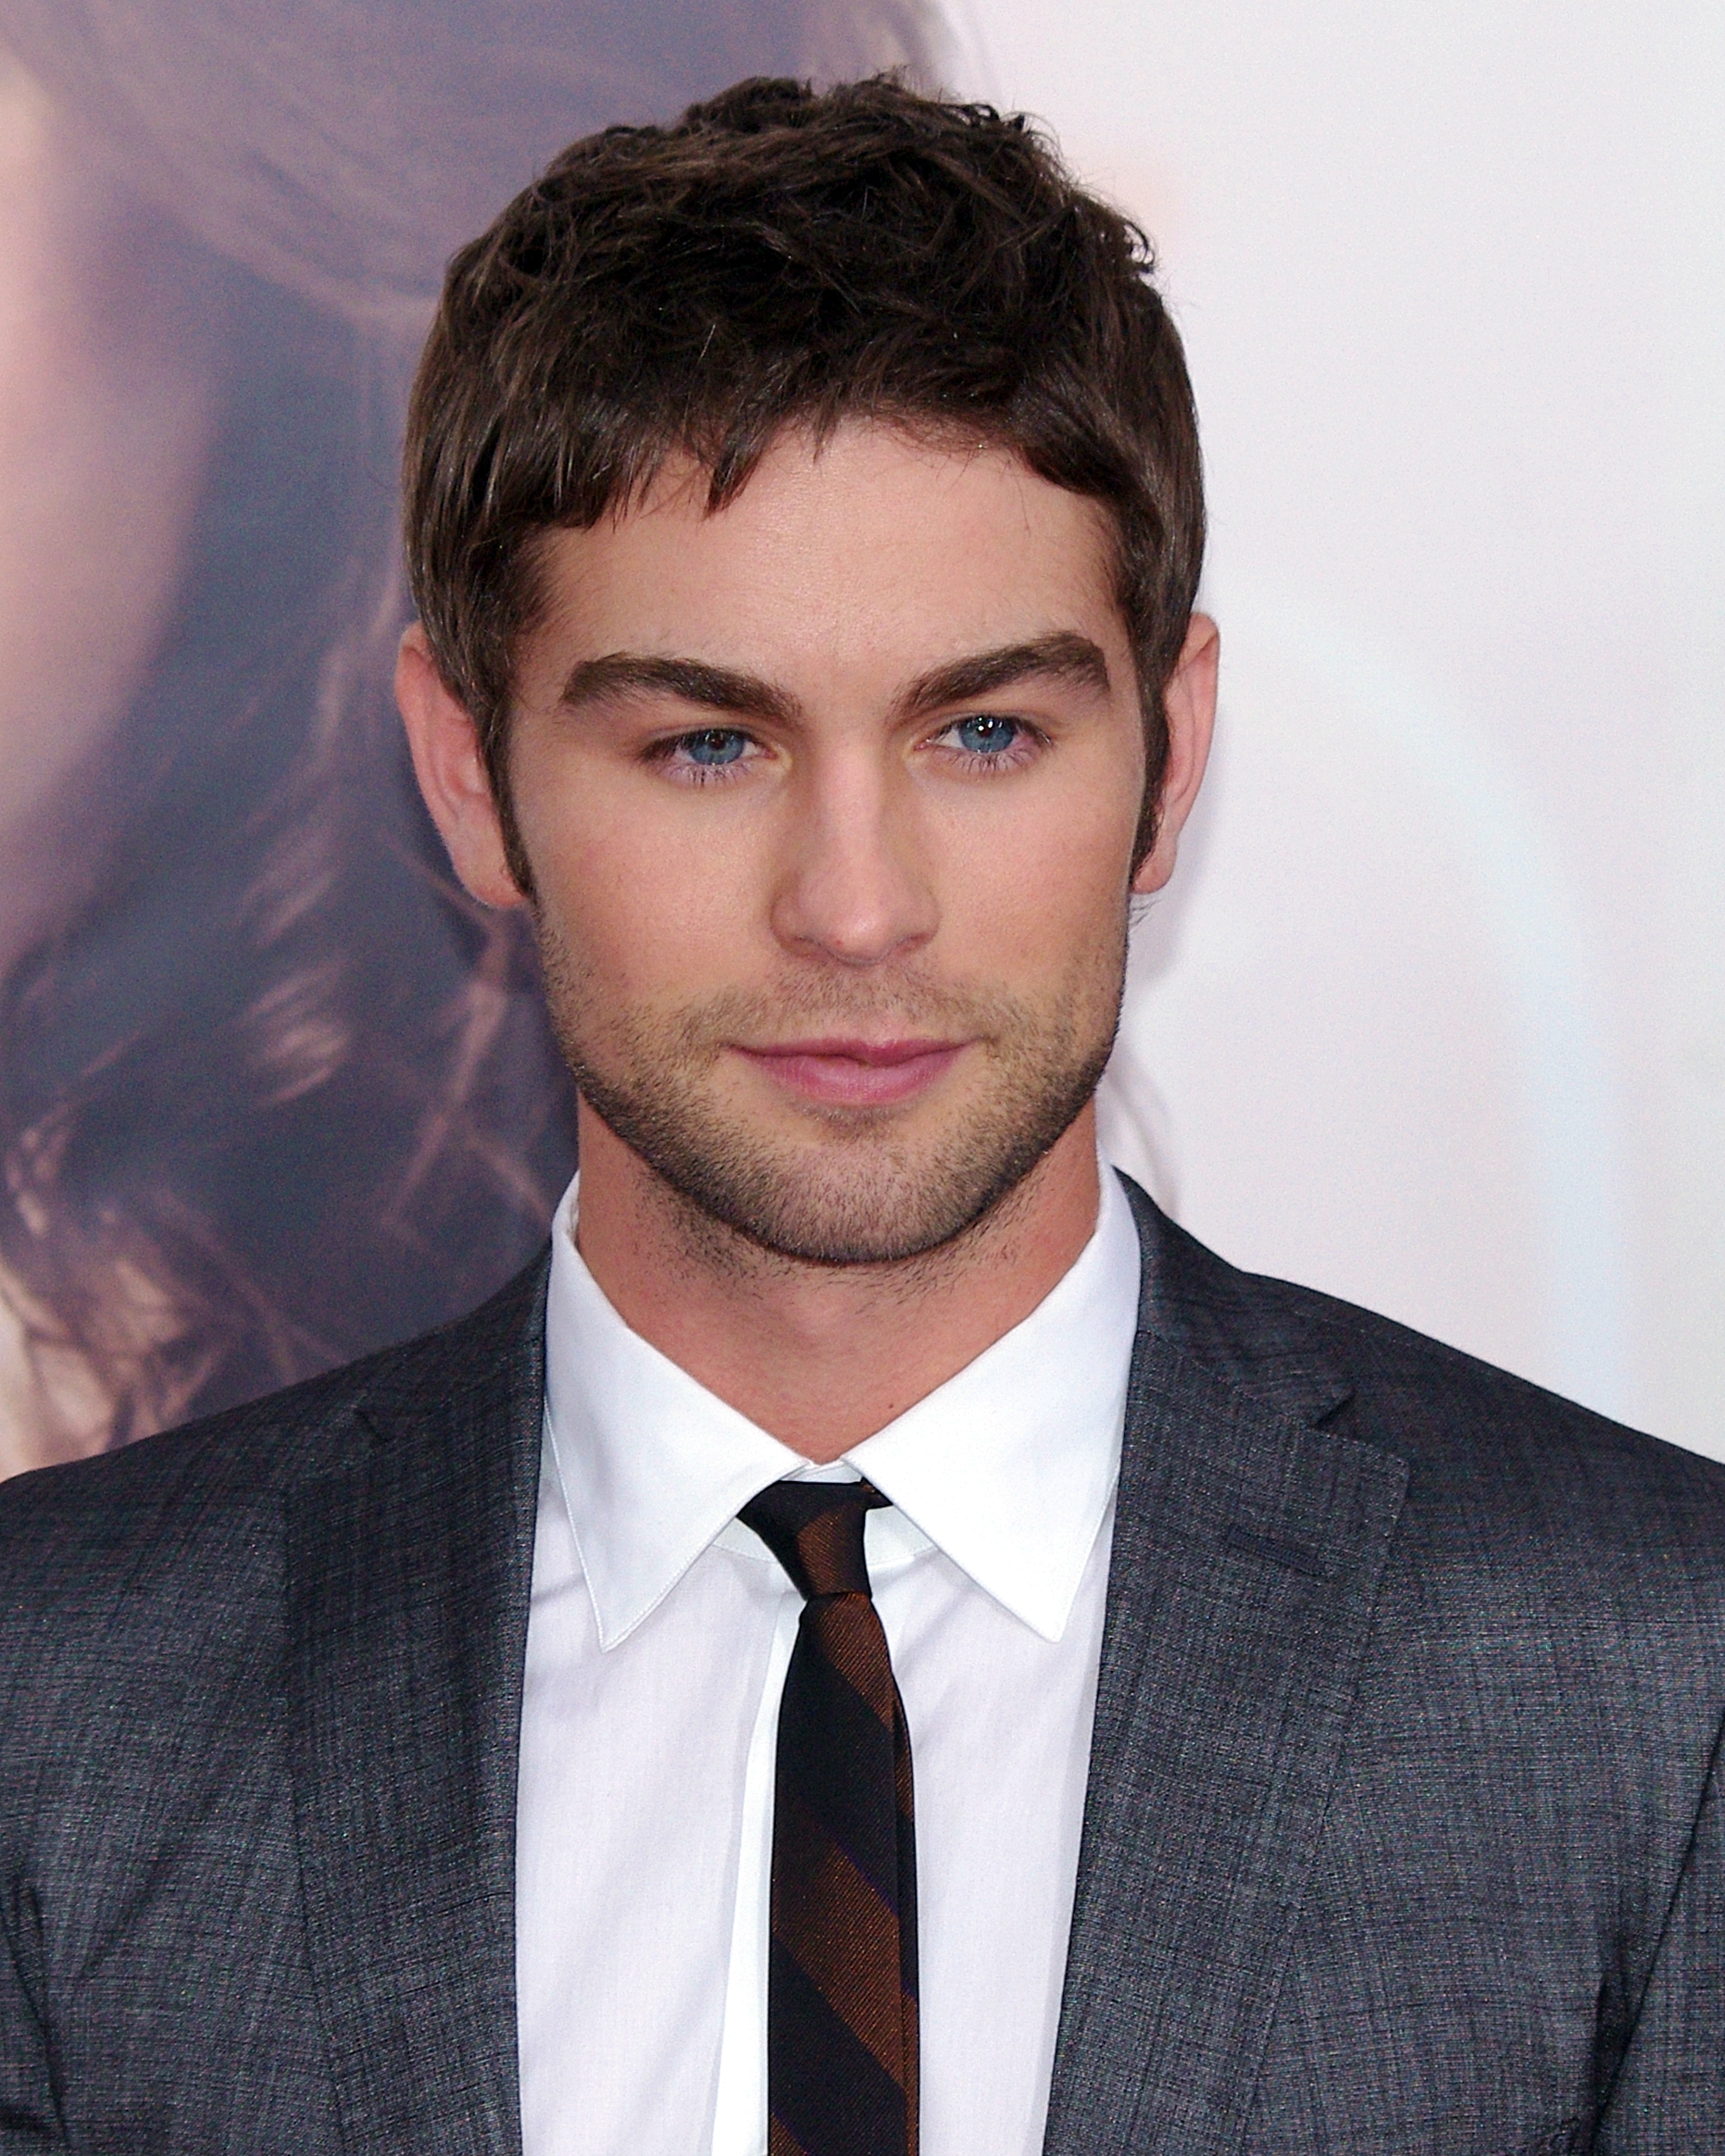 Chace Crawford | blackhairstylecuts.com